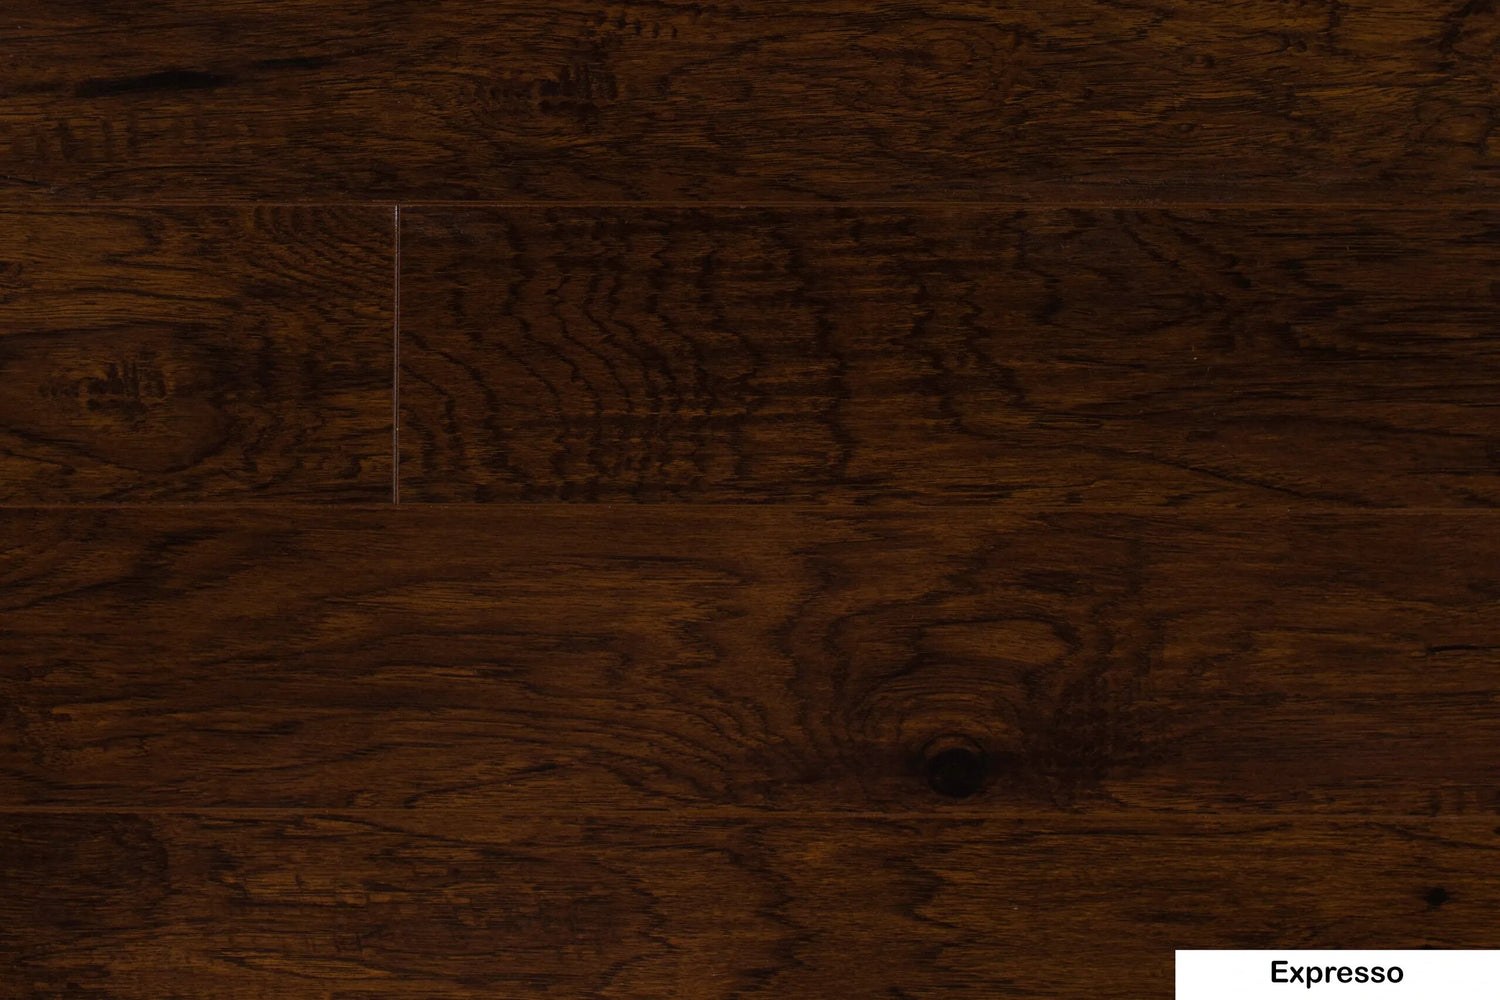 Infinity Laminate - 12mm - Expresso (price per sq.ft)